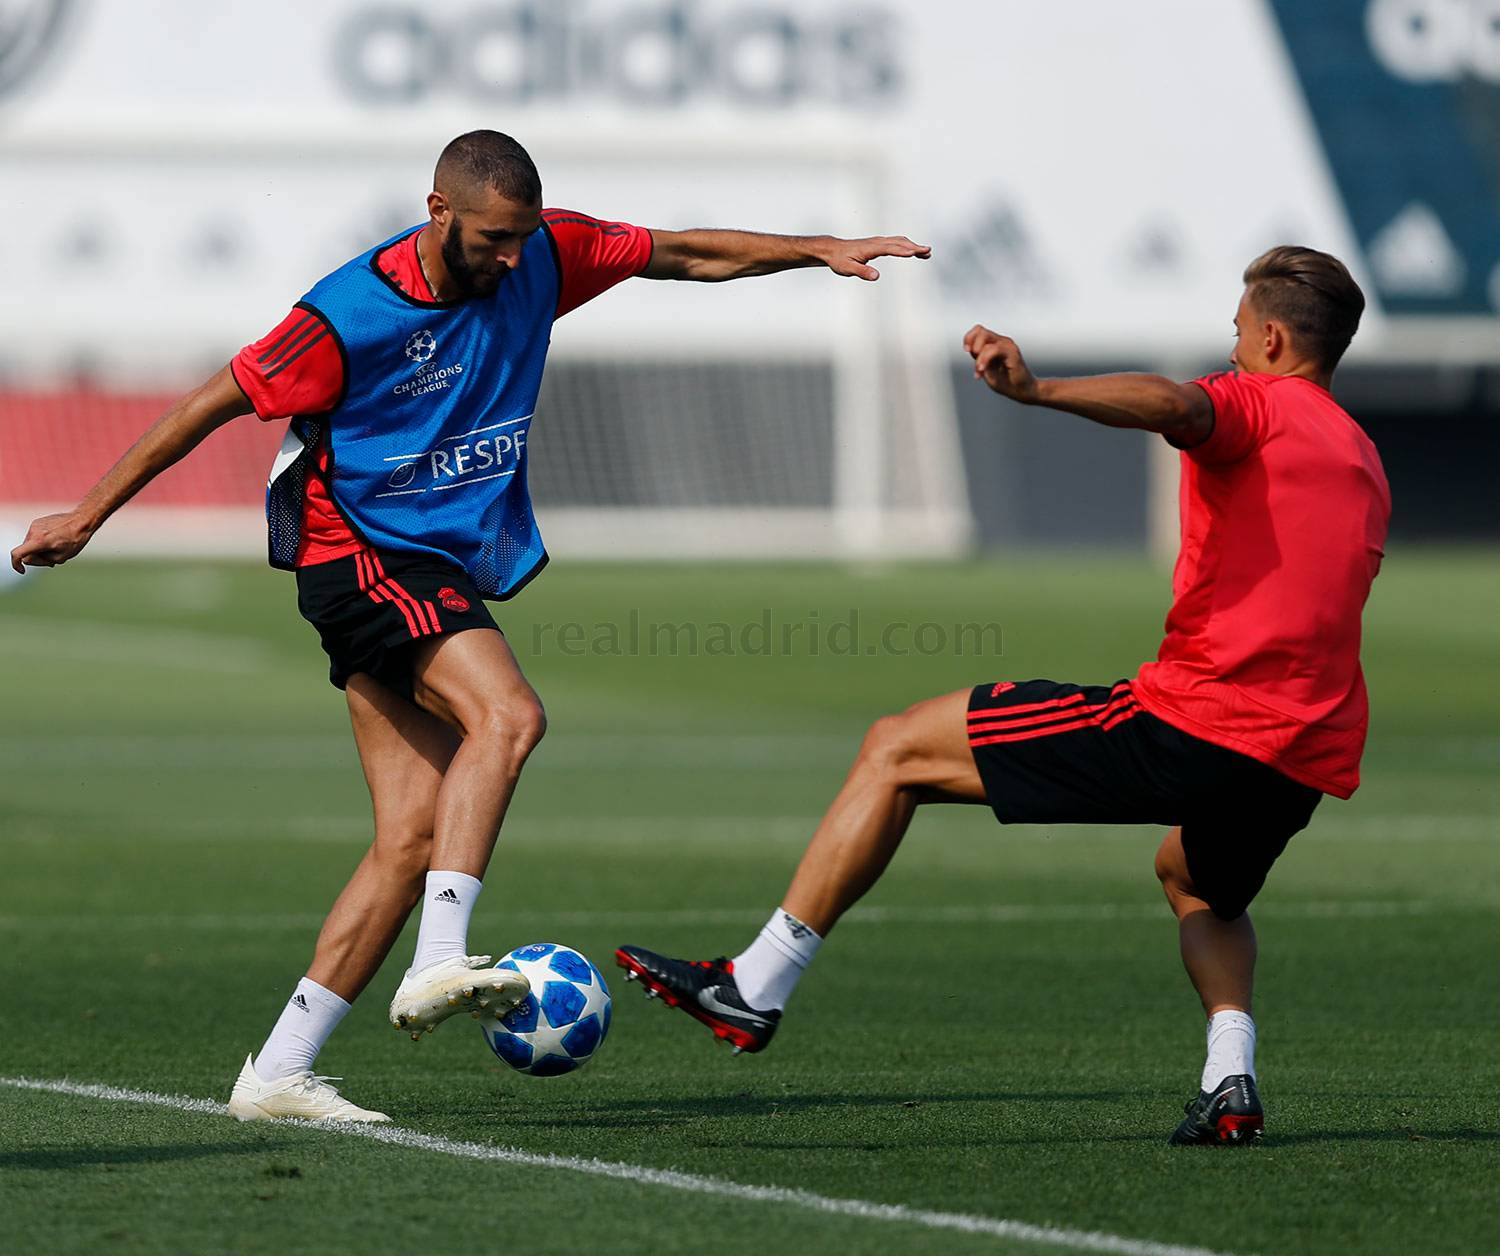 Real Madrid - Entrenamiento del Real Madrid - 18-09-2018